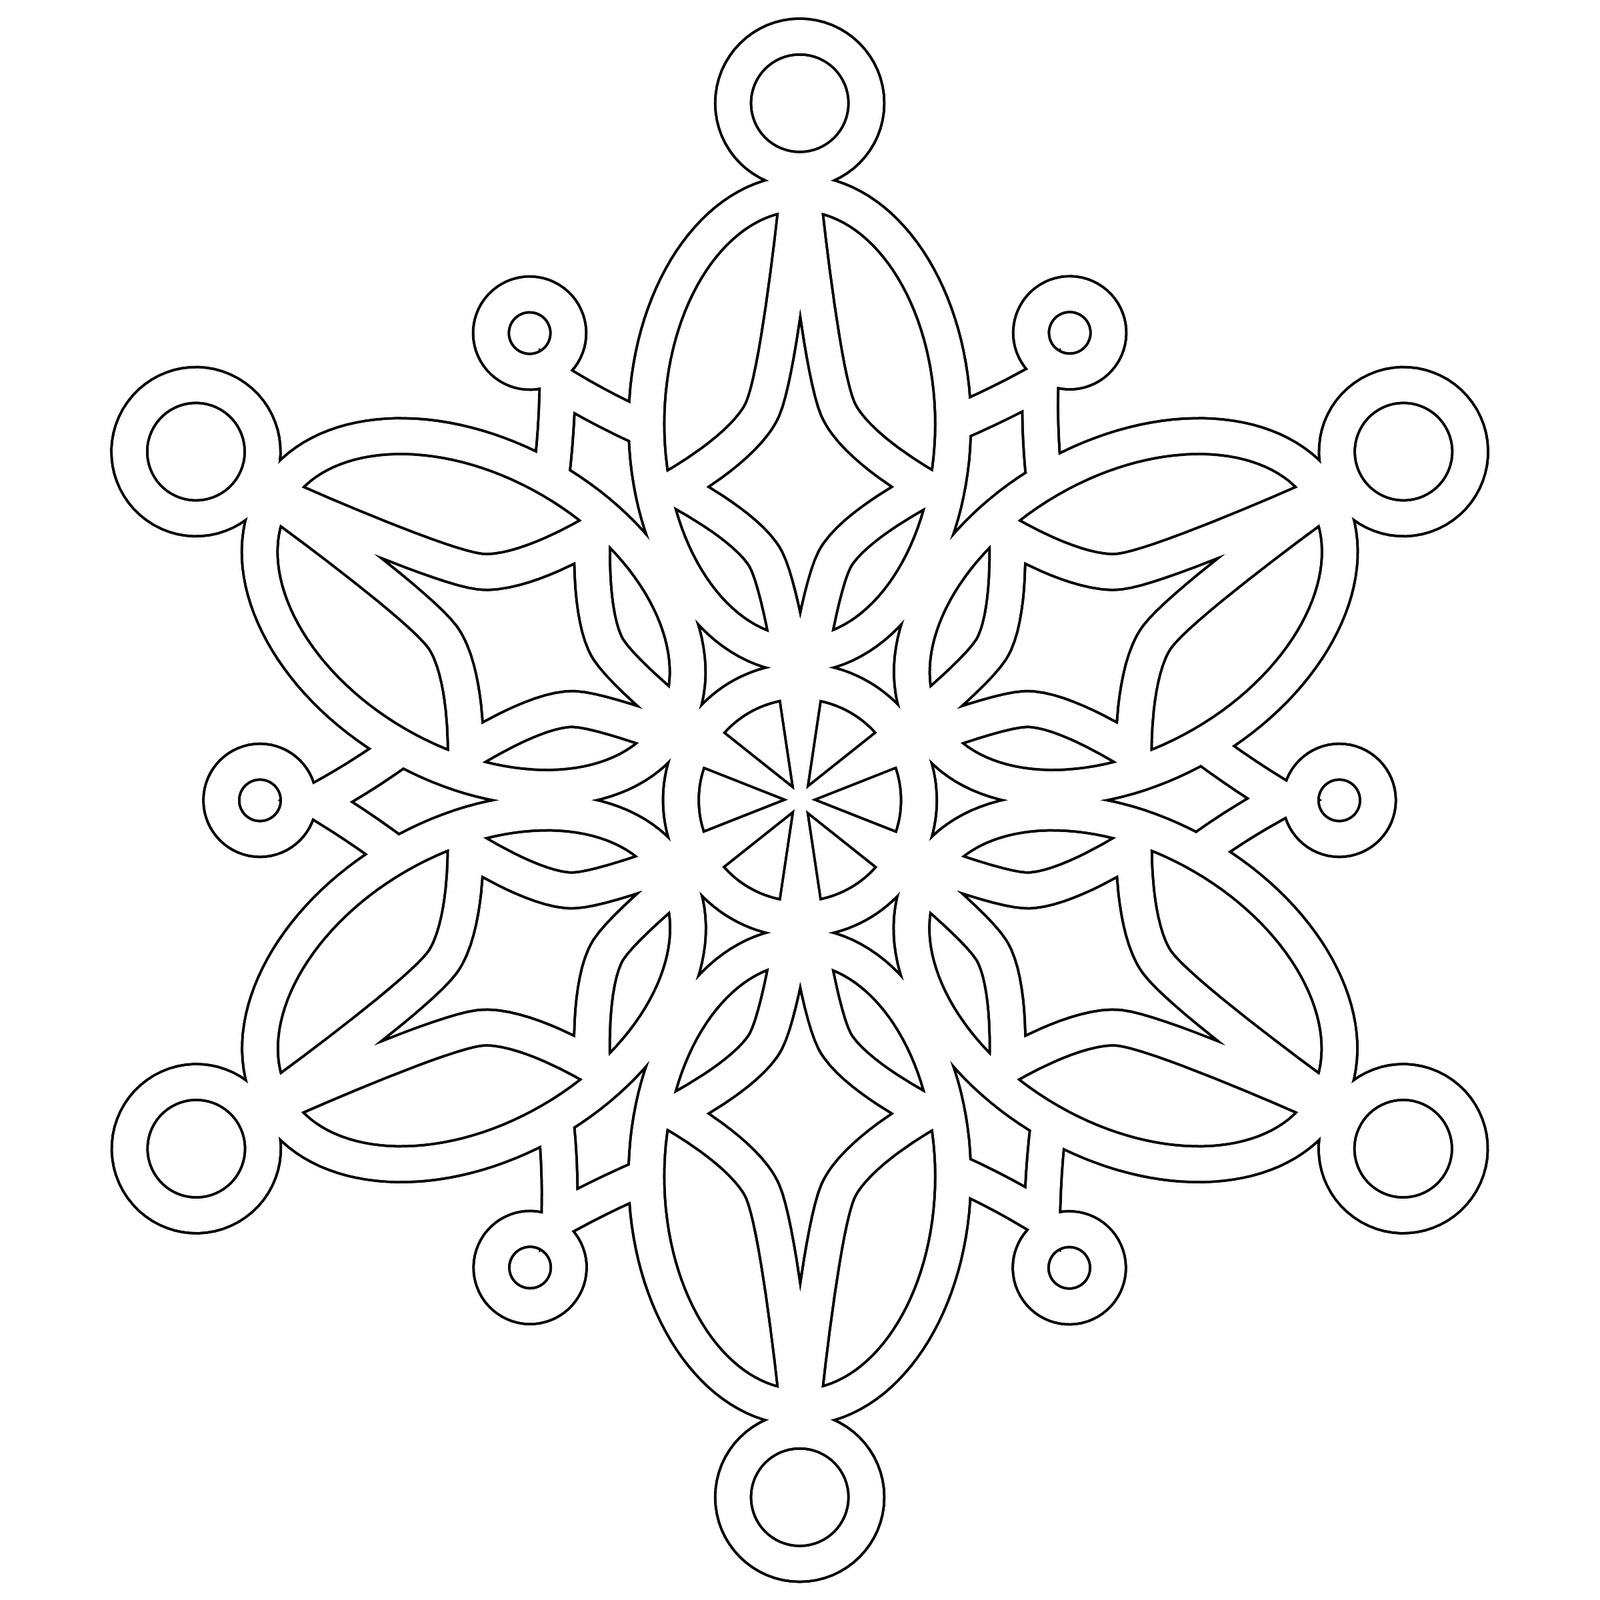 It's just a photo of Divine snowflakes coloring pages printable